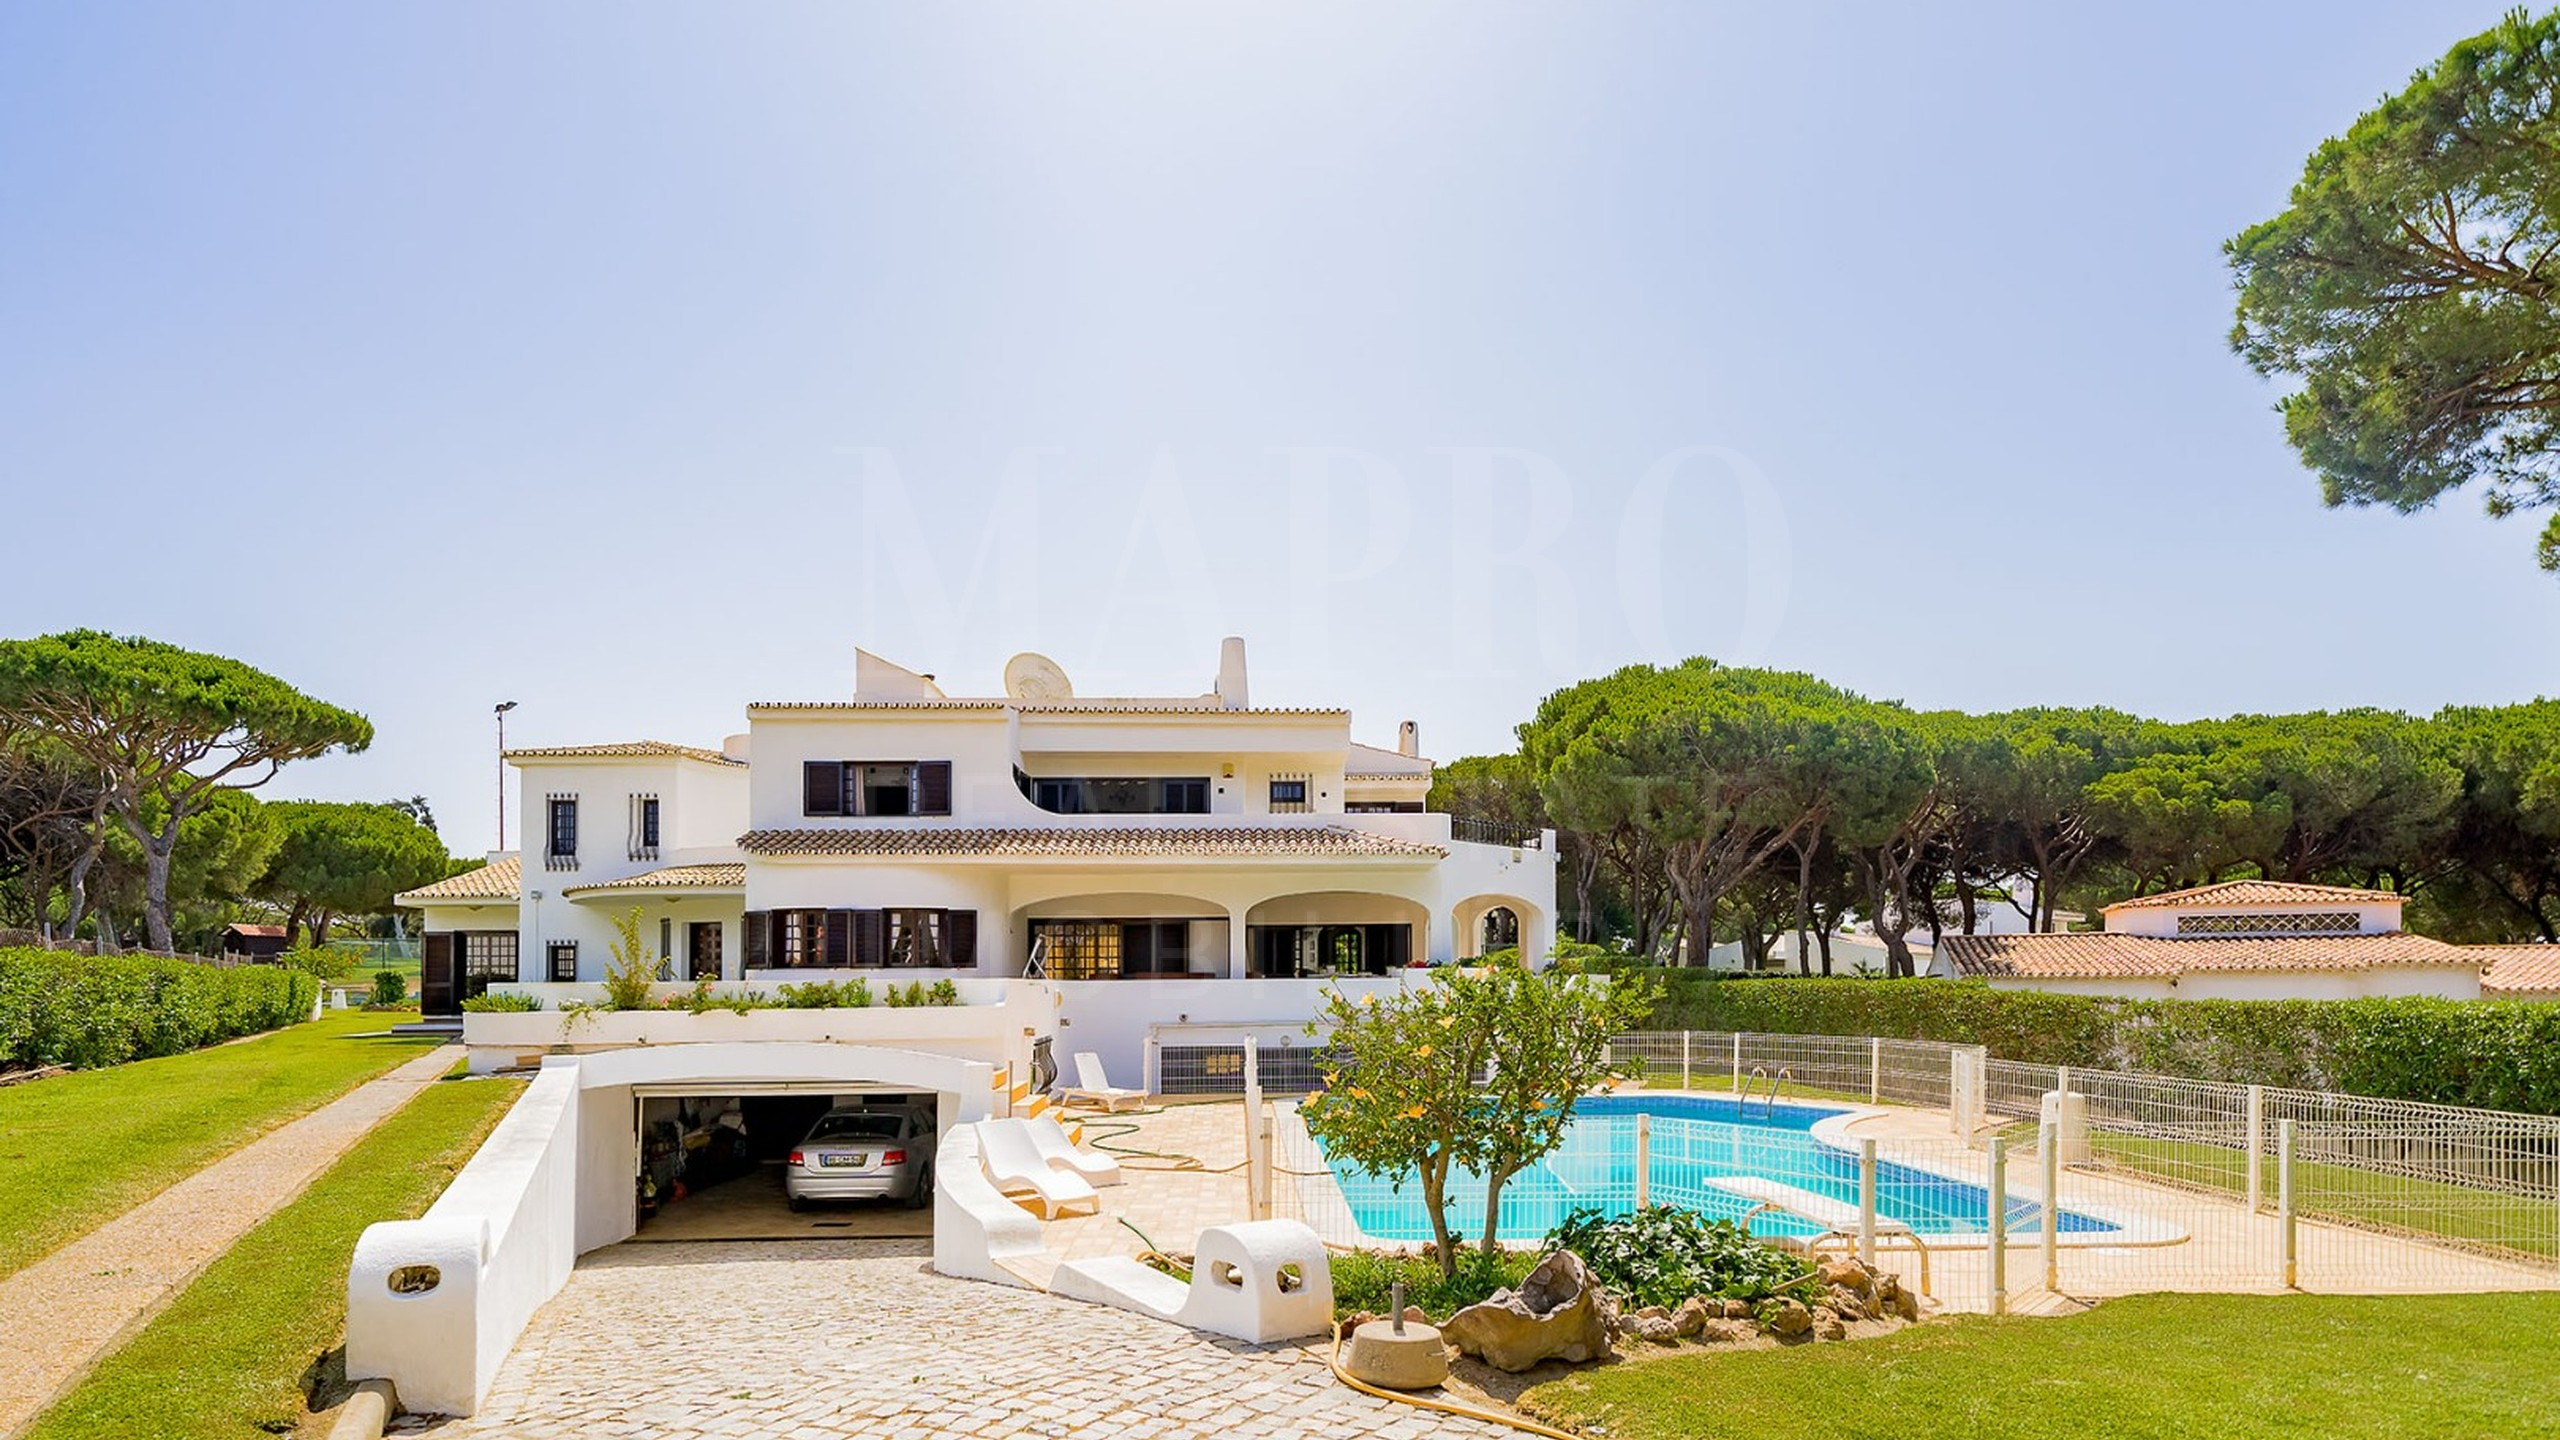 Villa for sale in Vilamoura, Algarve, Portugal